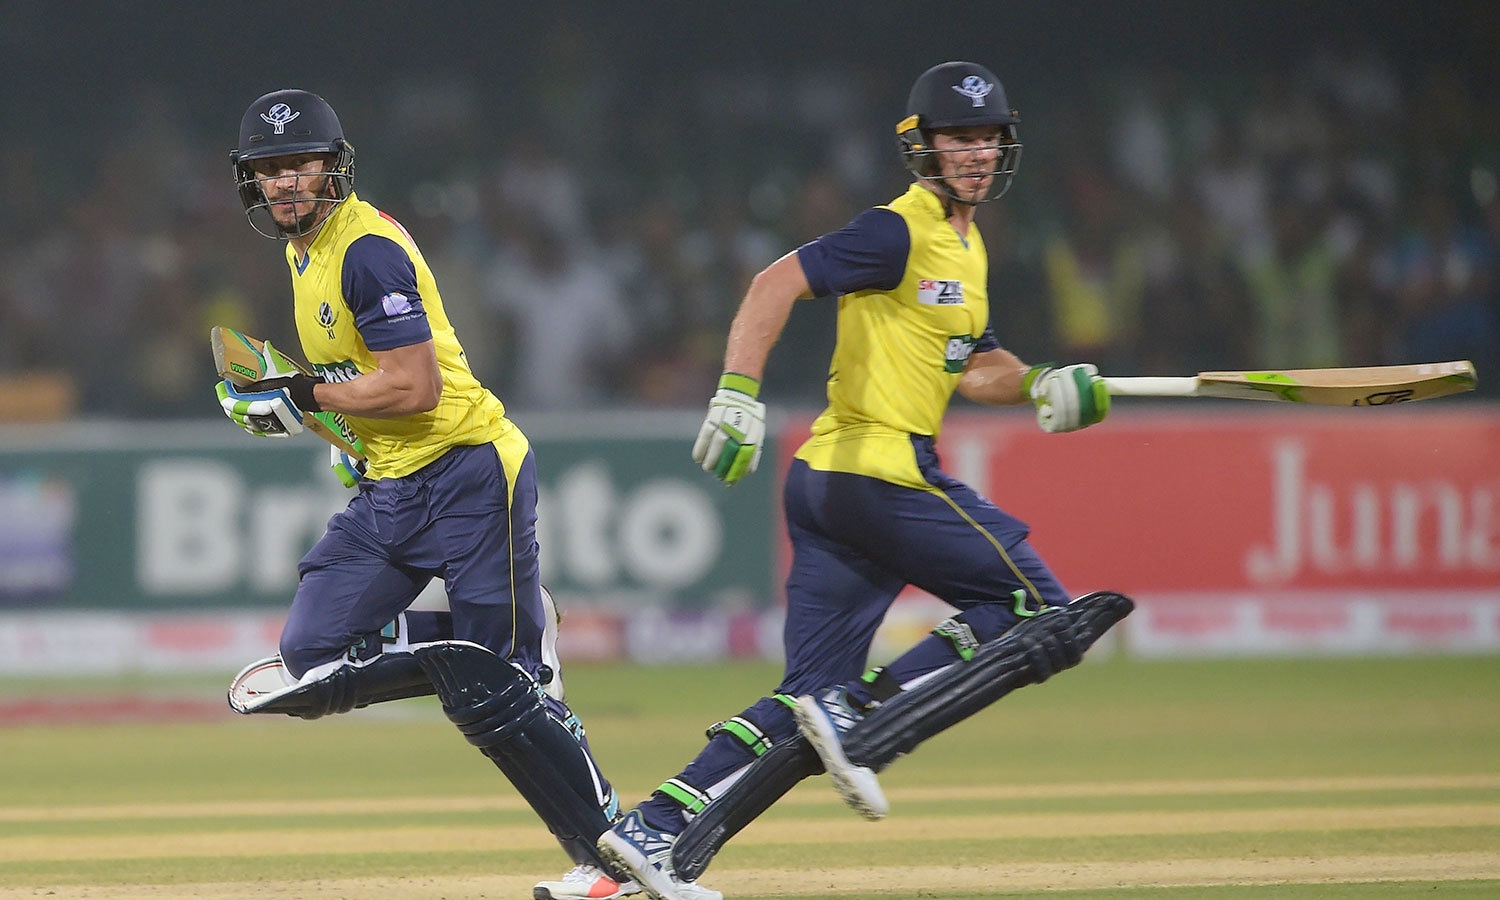 World XI captain Faf du Plessis (L) and teammate Tim Paine run between the wicket during the first Twenty20 international match between the World XI and Pakistan at the Gaddafi Stadium in Lahore on September 12, 2017. —AFP